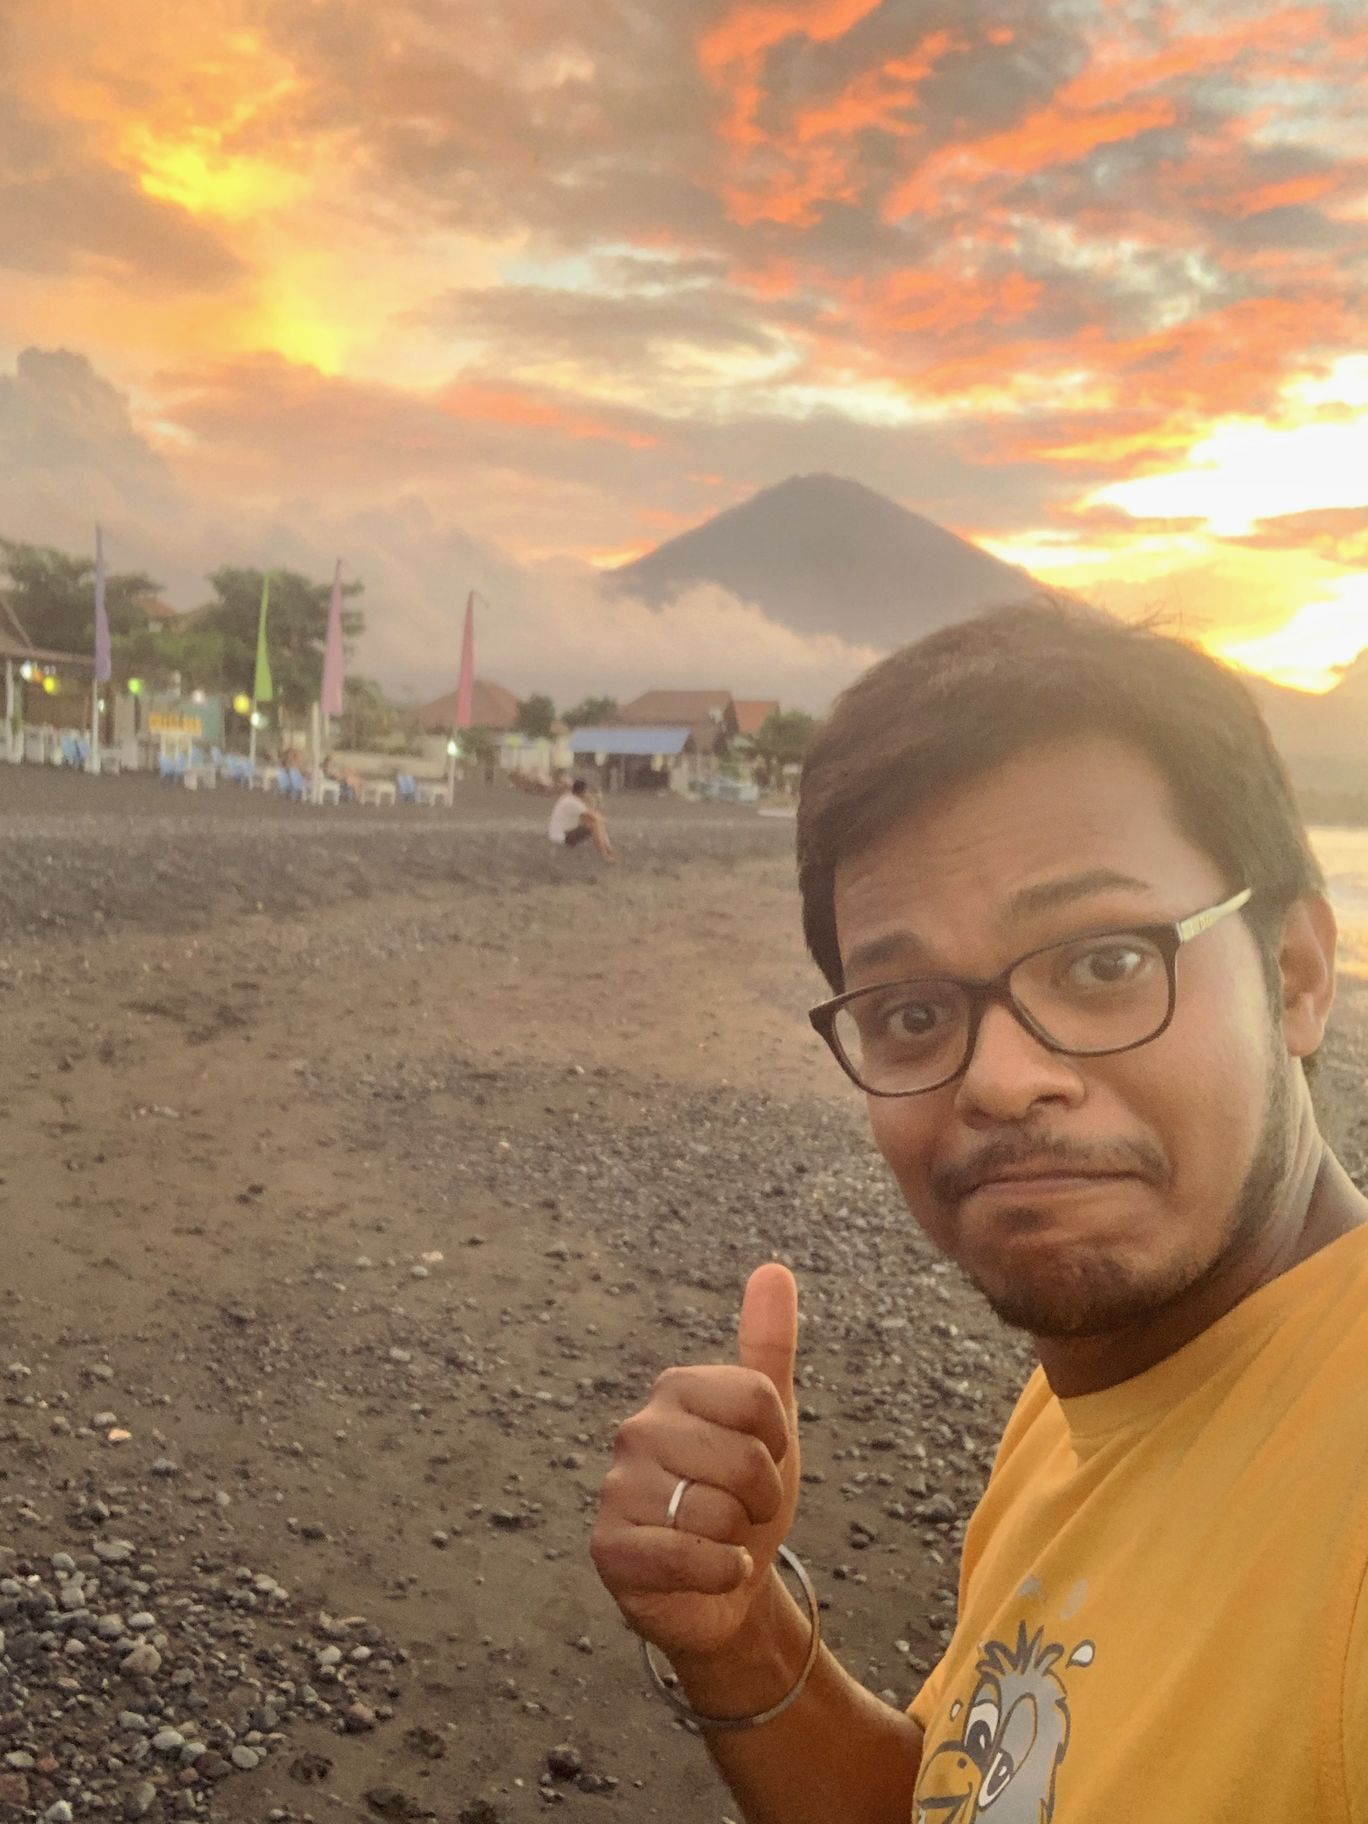 Photo of Mount Agung By Manish Deo